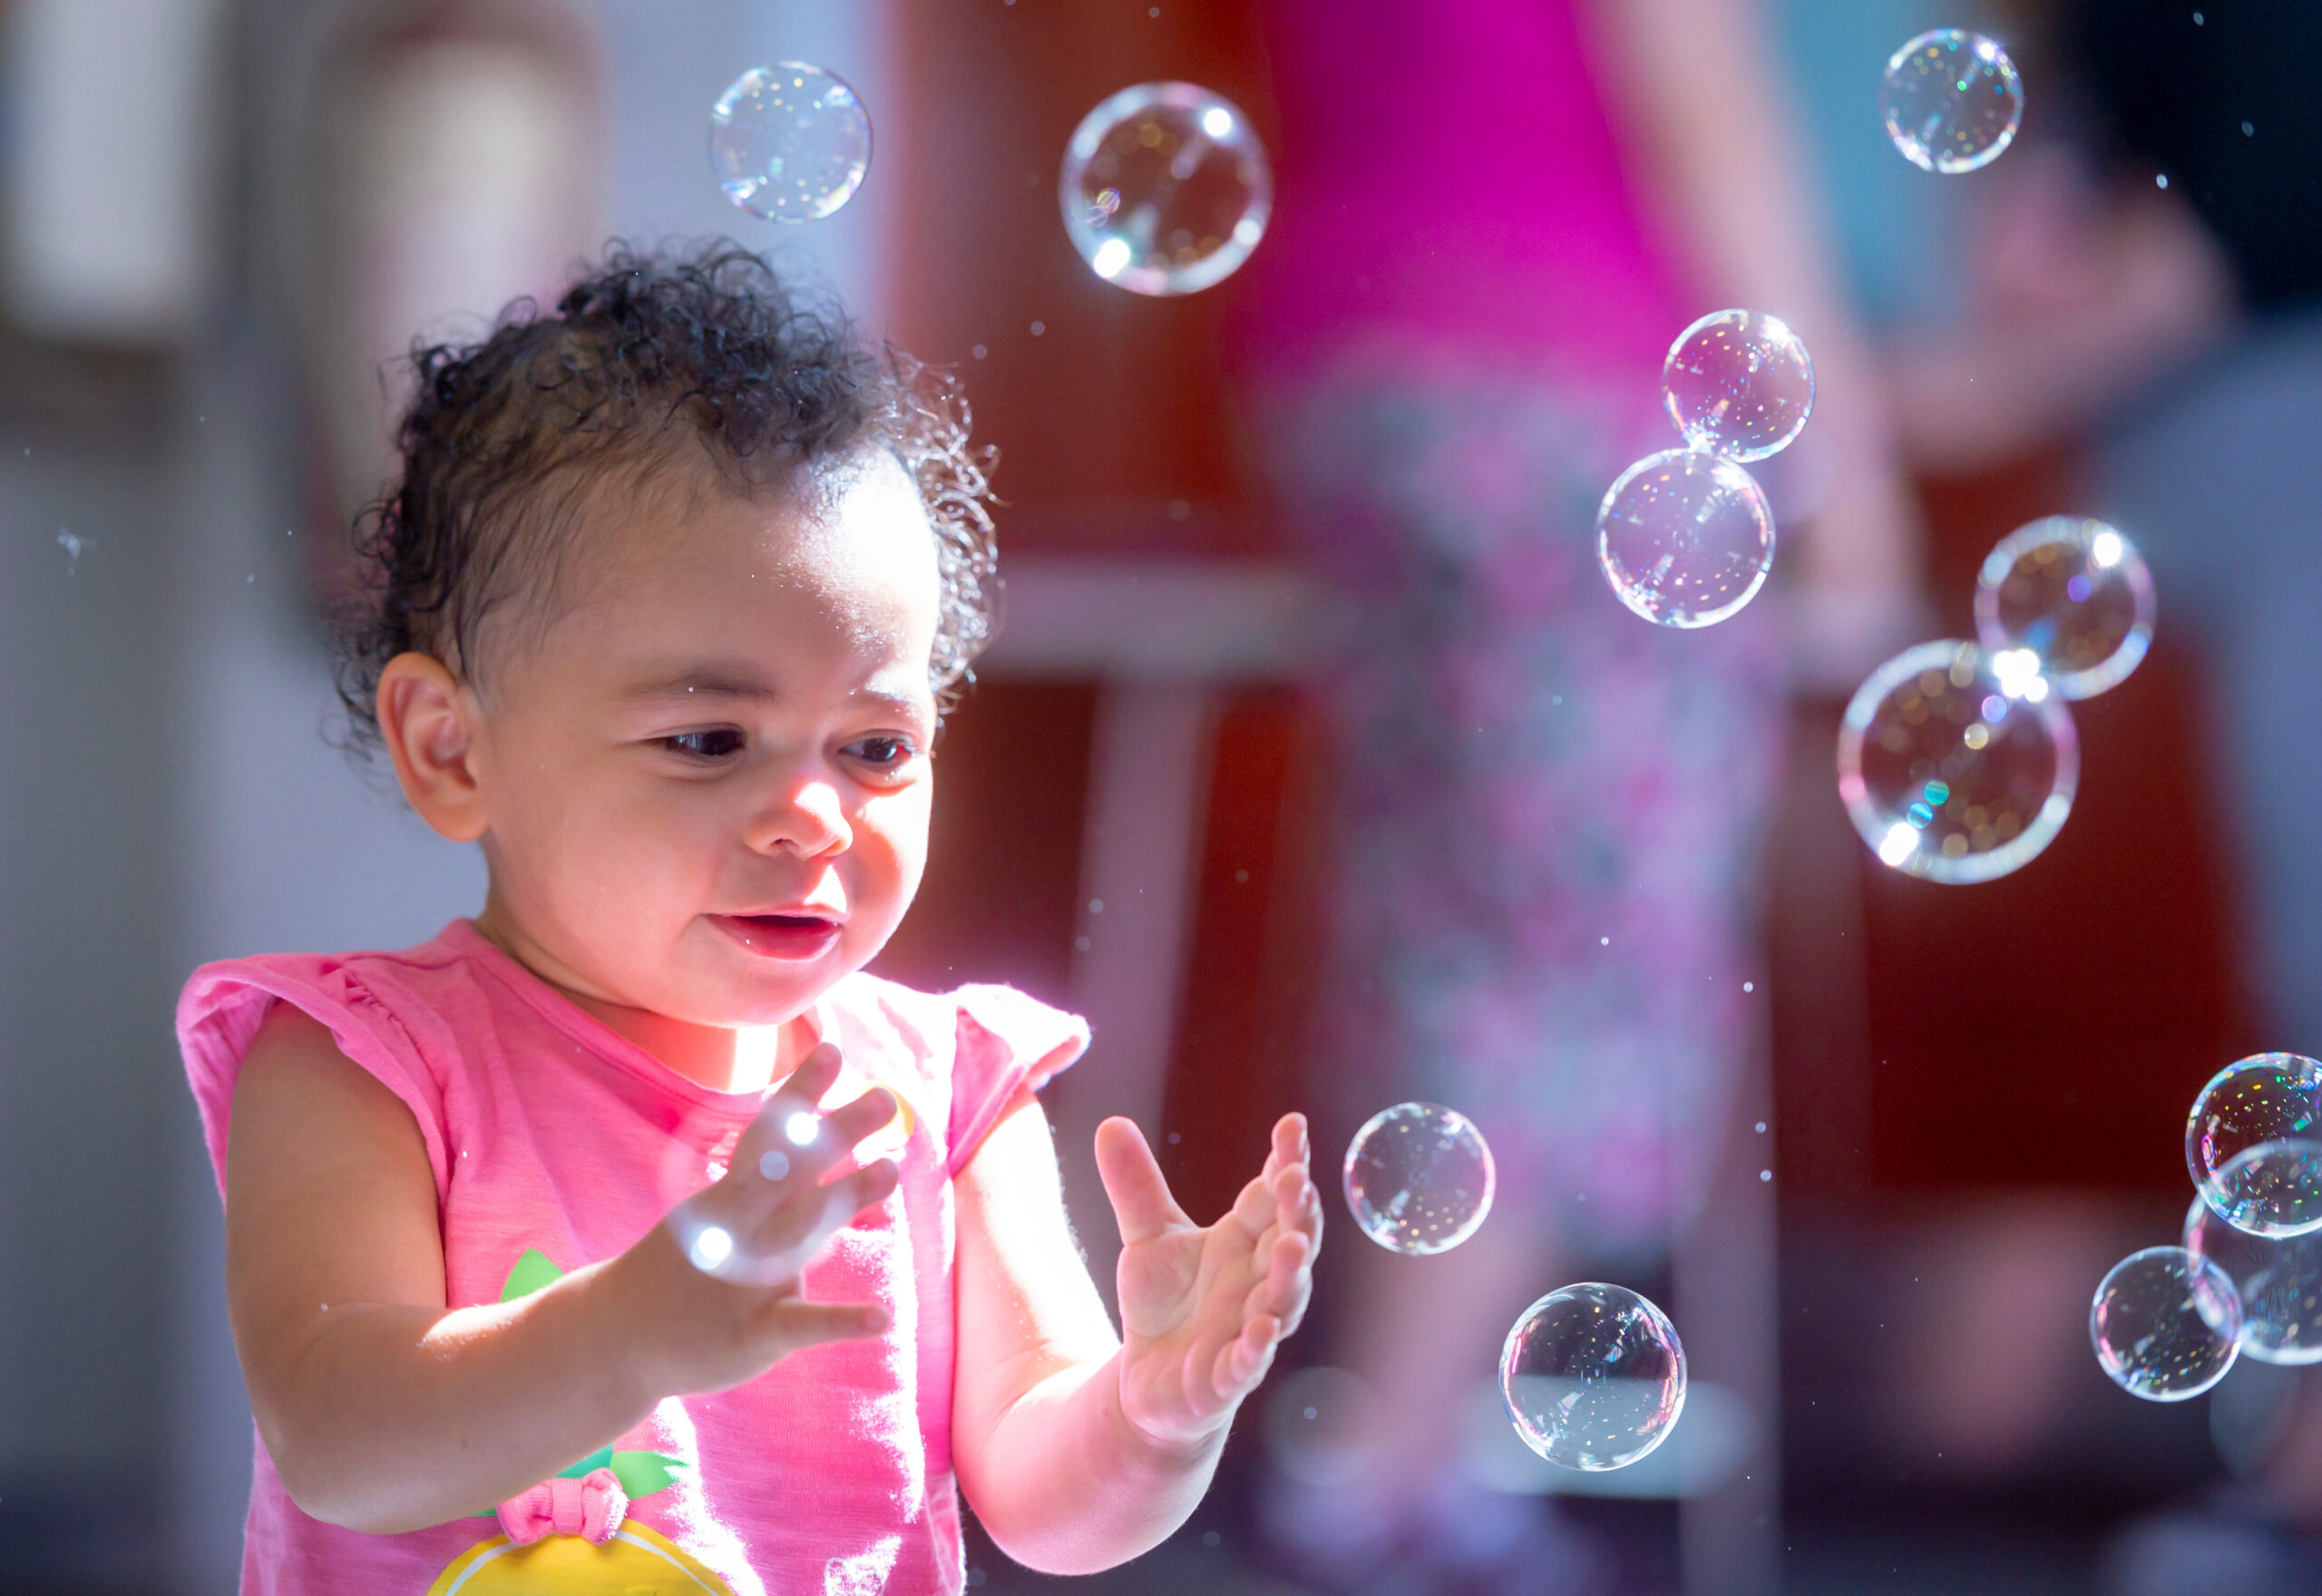 Image of a toddler playing with bubbles